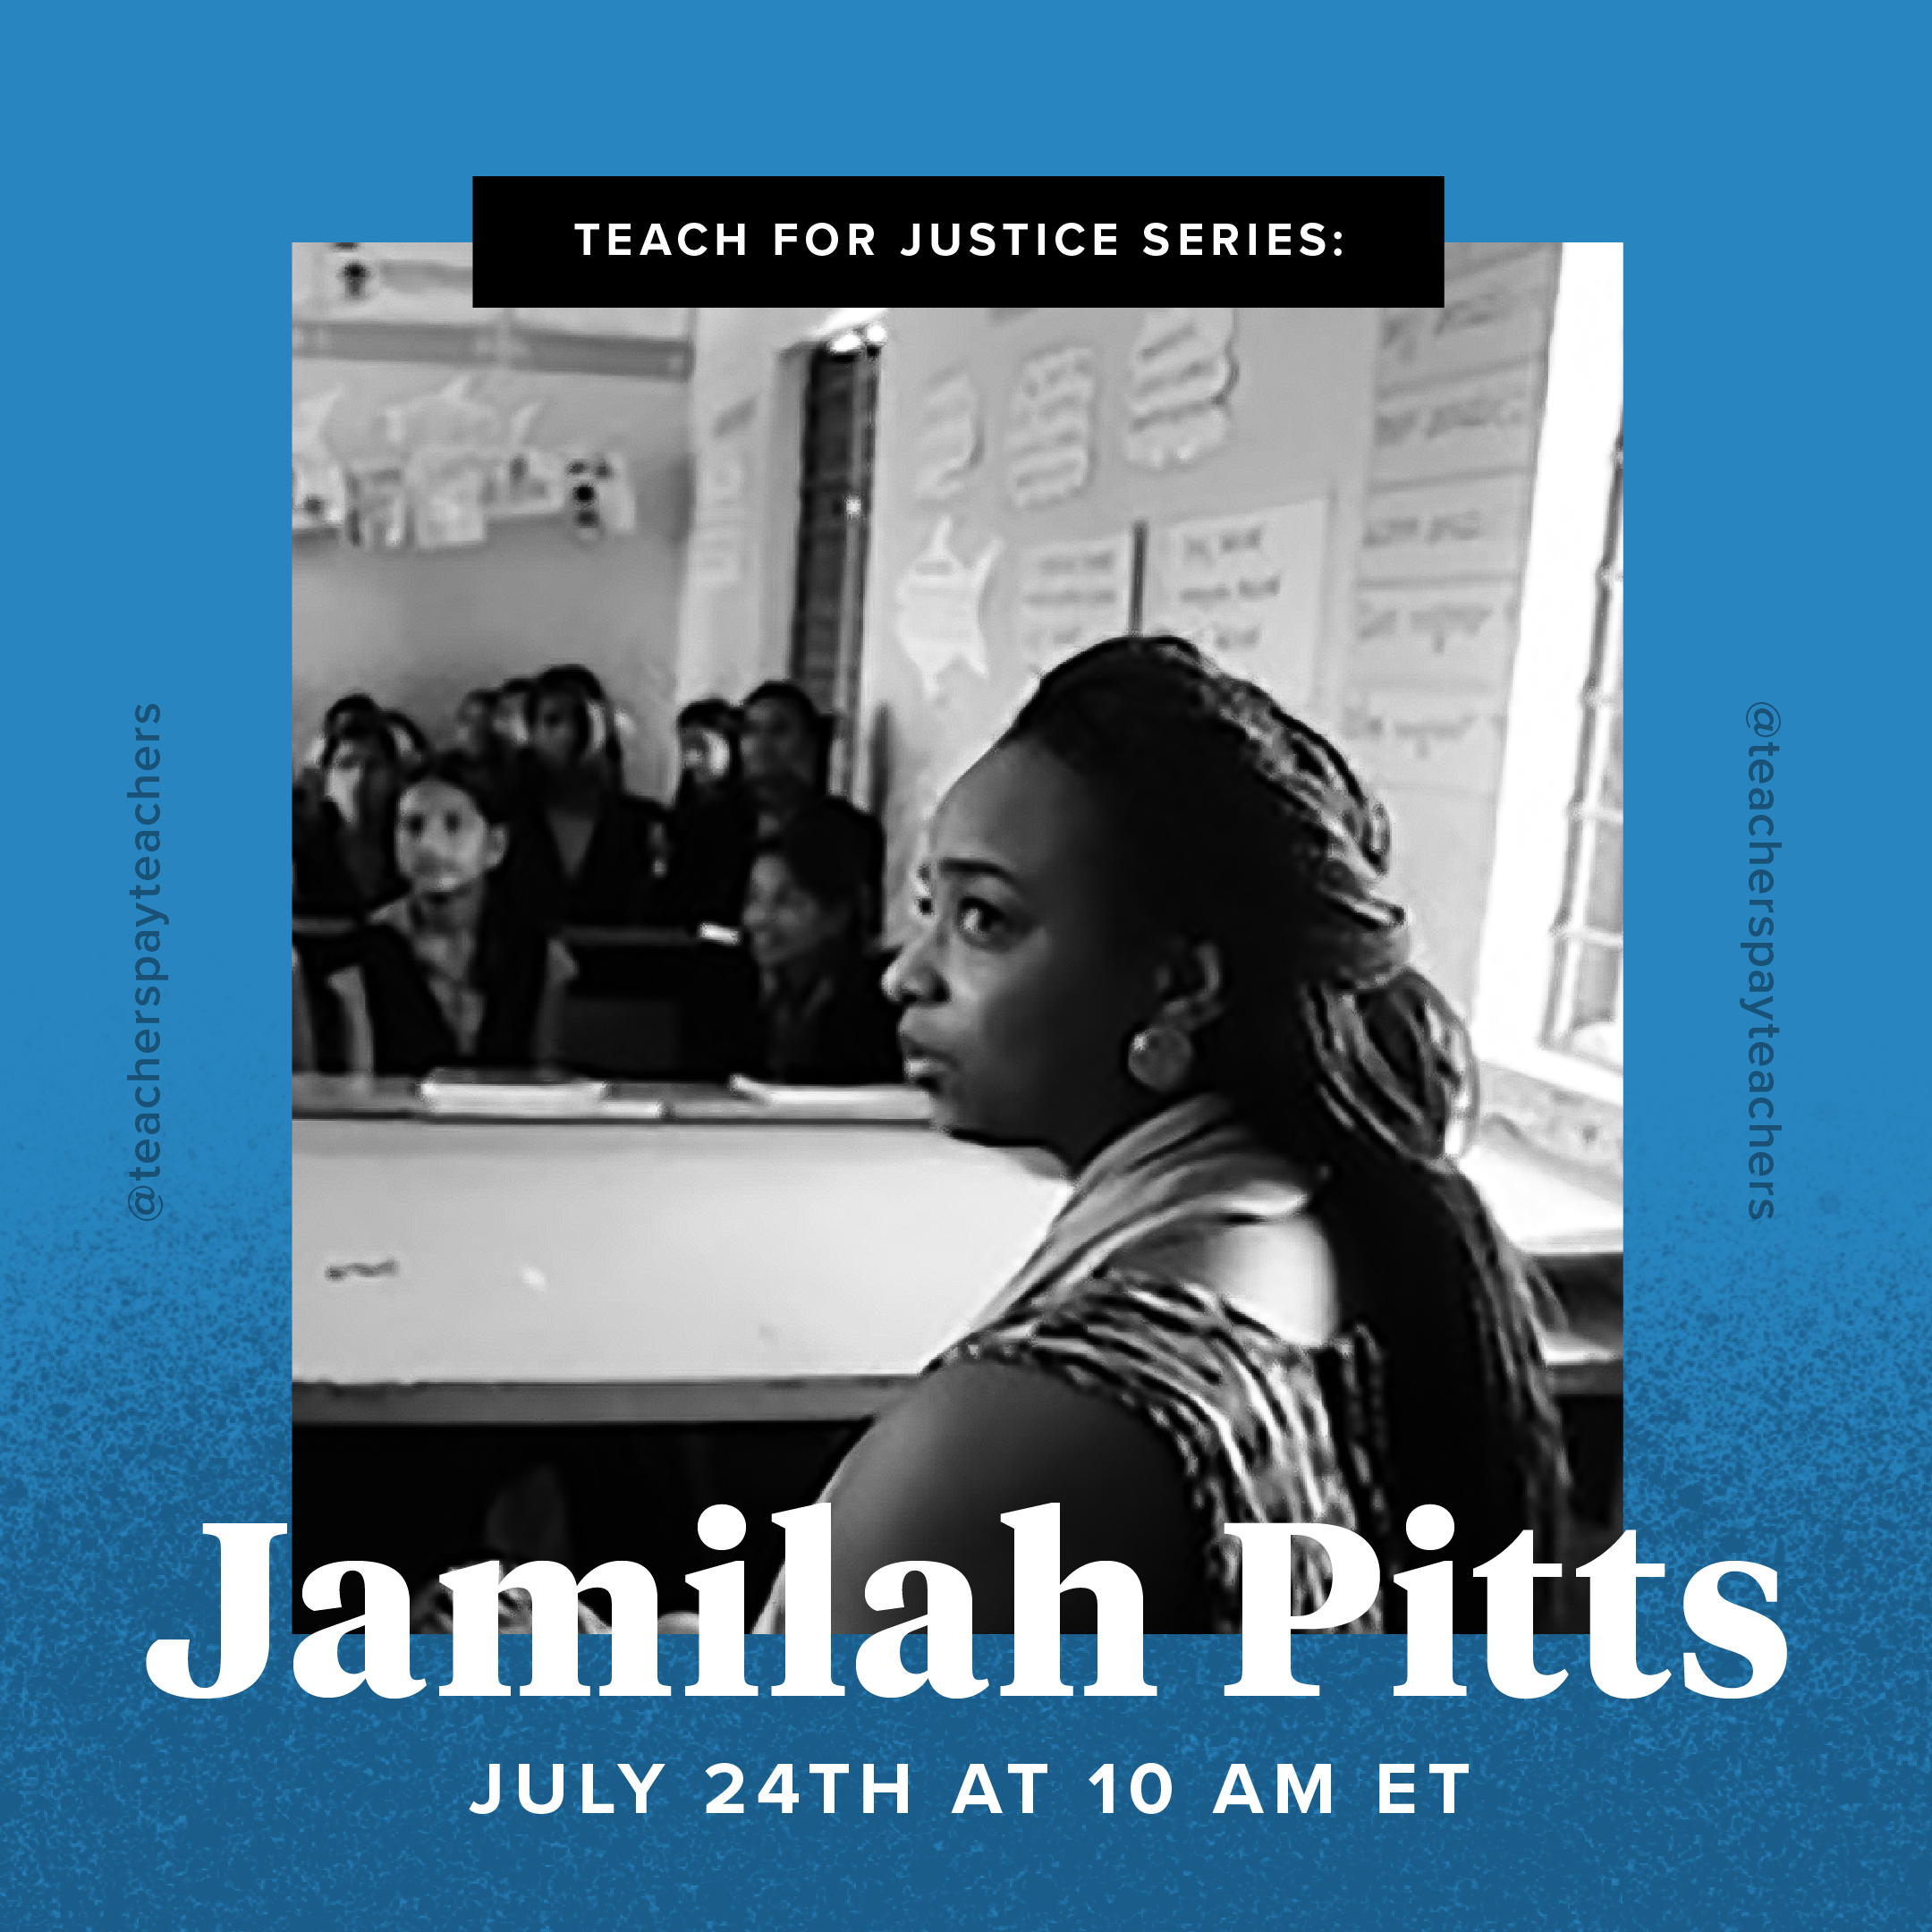 Register for the Teach for Justice Webinar with Jamilah Pitts